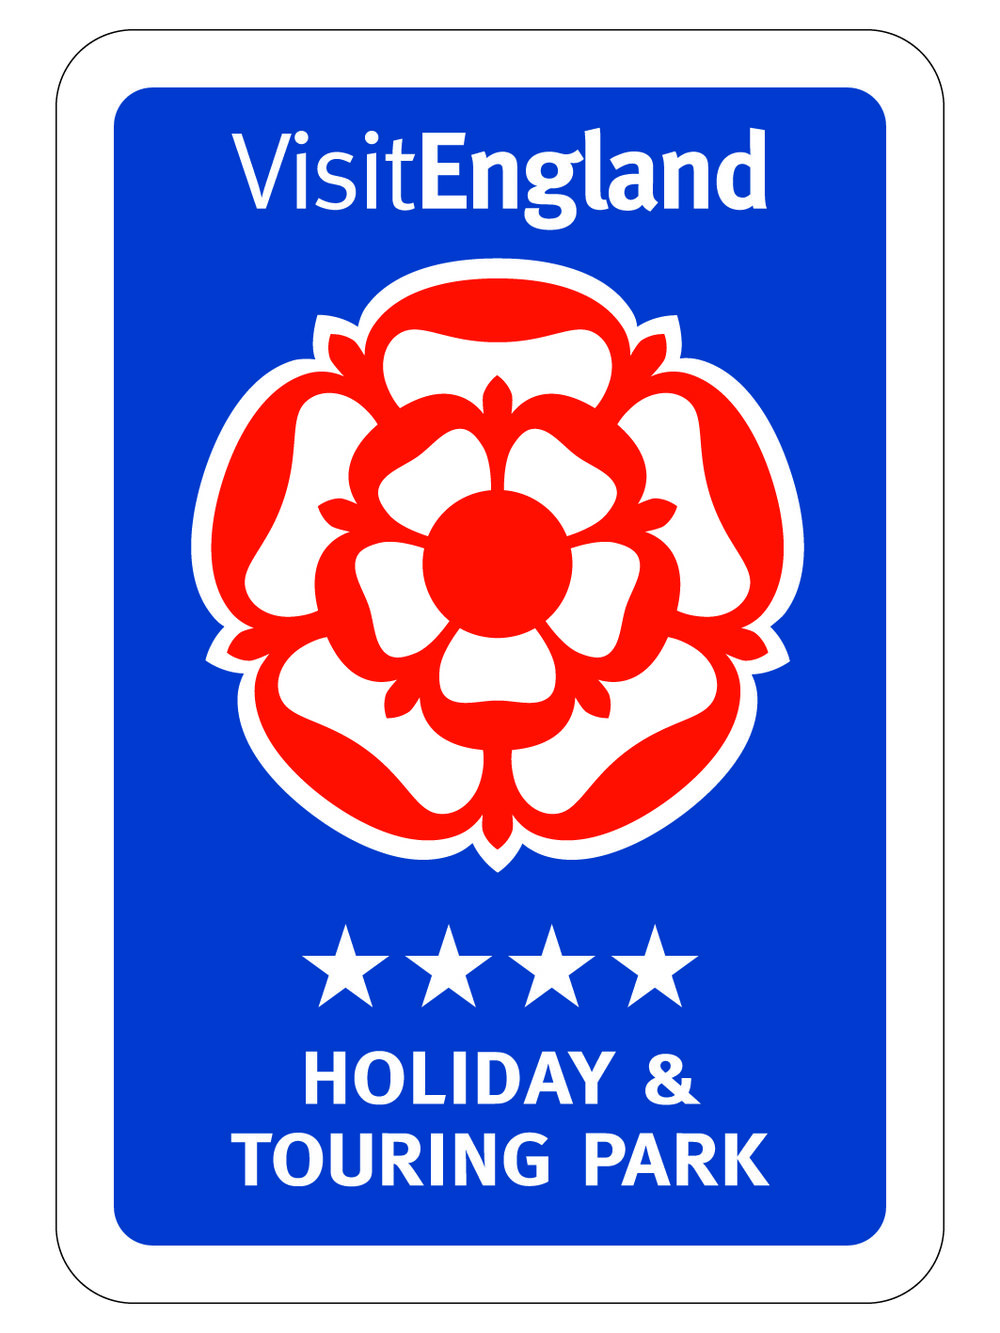 VISIT ENGLAND - 4 STAR HOLIDAY & TOURING PARK (1).jpg